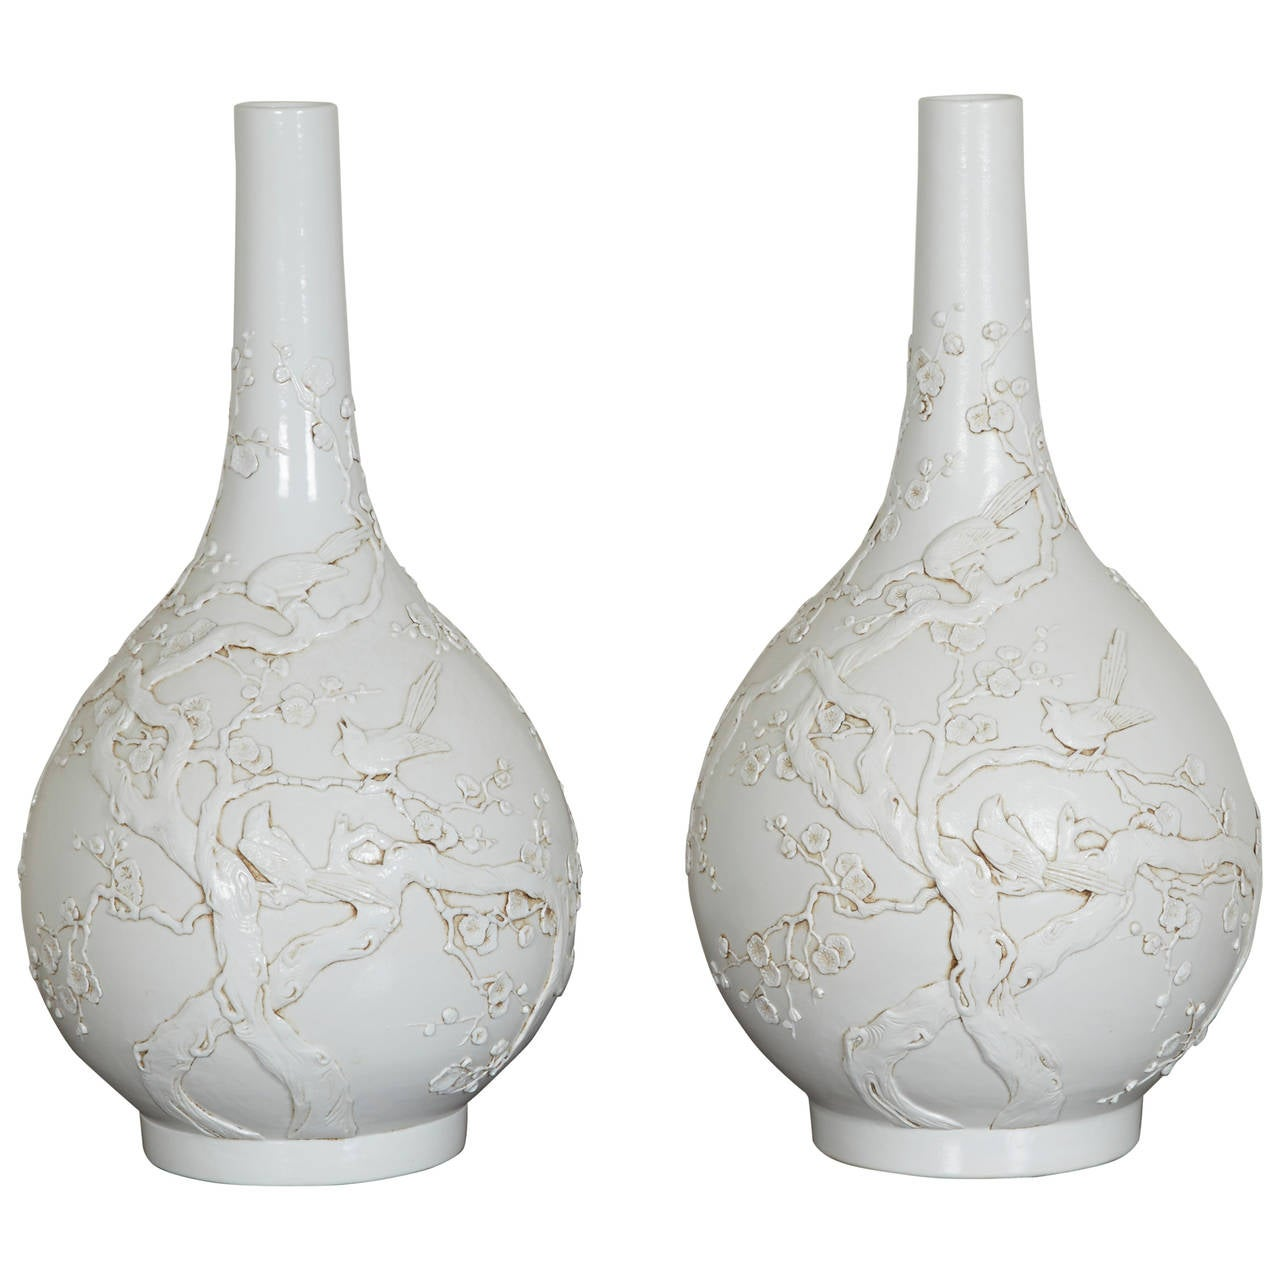 pair of chinese porcelain blanc de chine vases for sale at 1stdibs. Black Bedroom Furniture Sets. Home Design Ideas